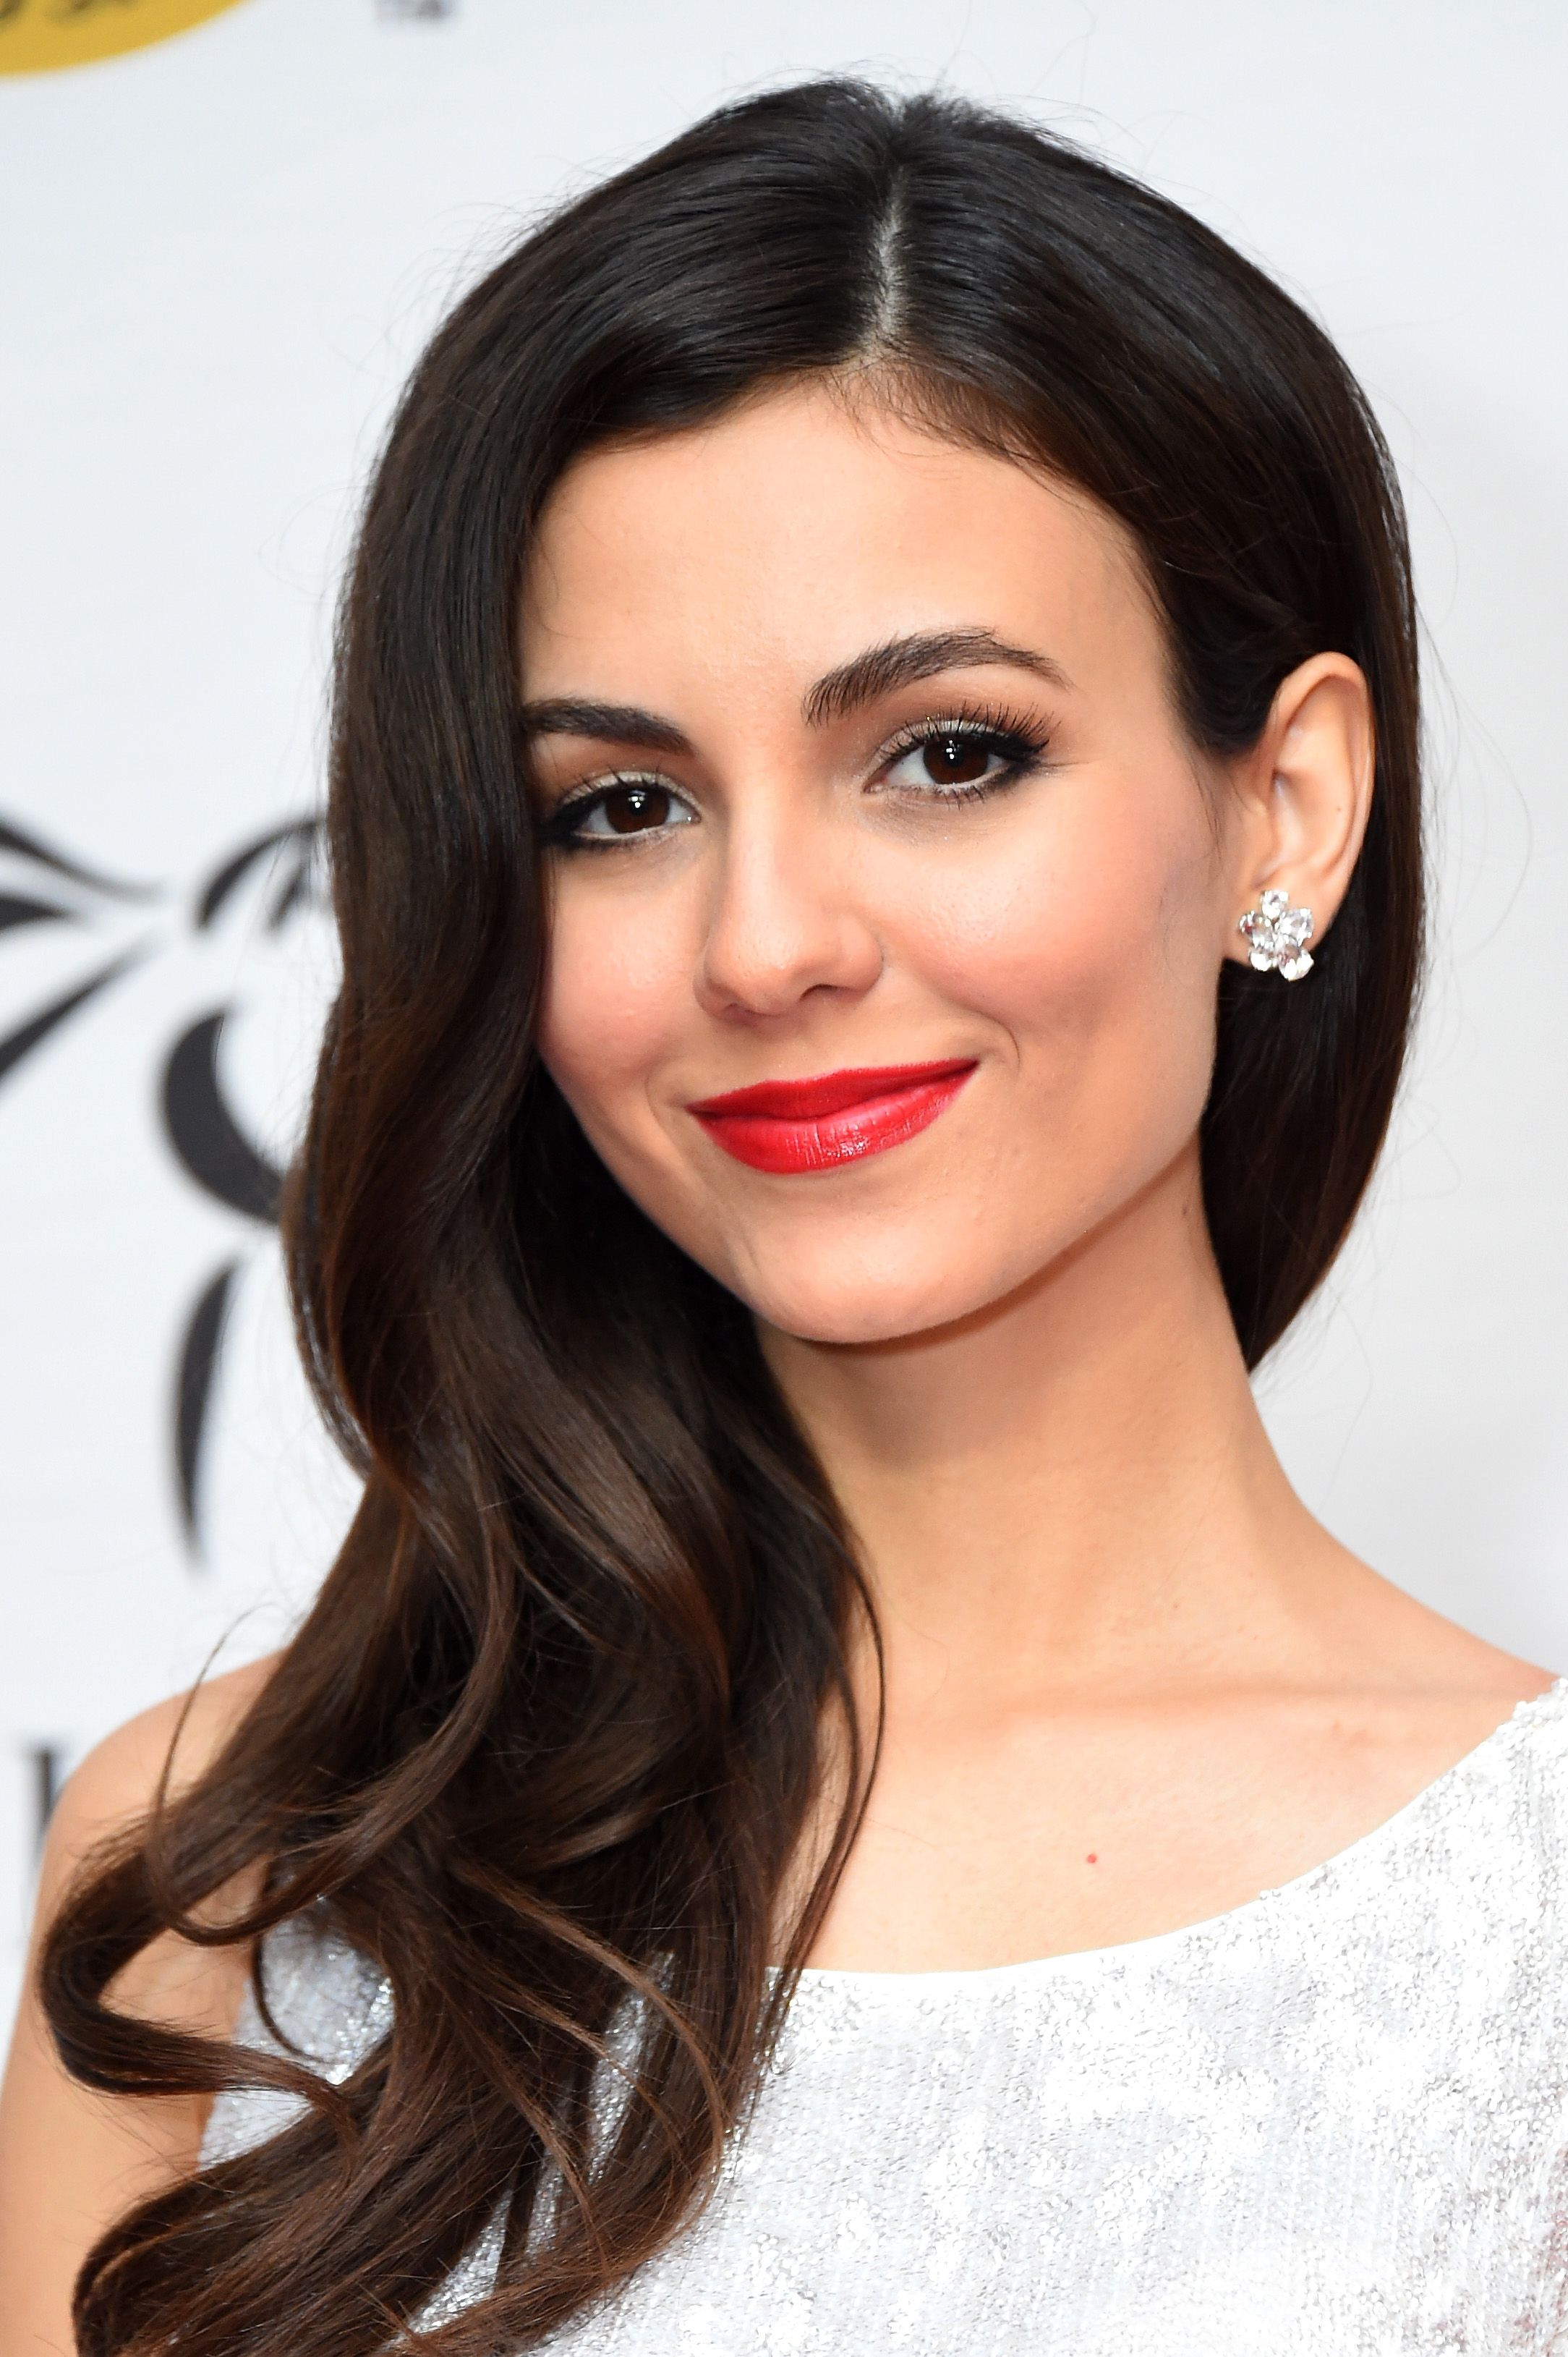 Pin by Marco H on Victoria Justice | Pinterest | Victoria justice ...